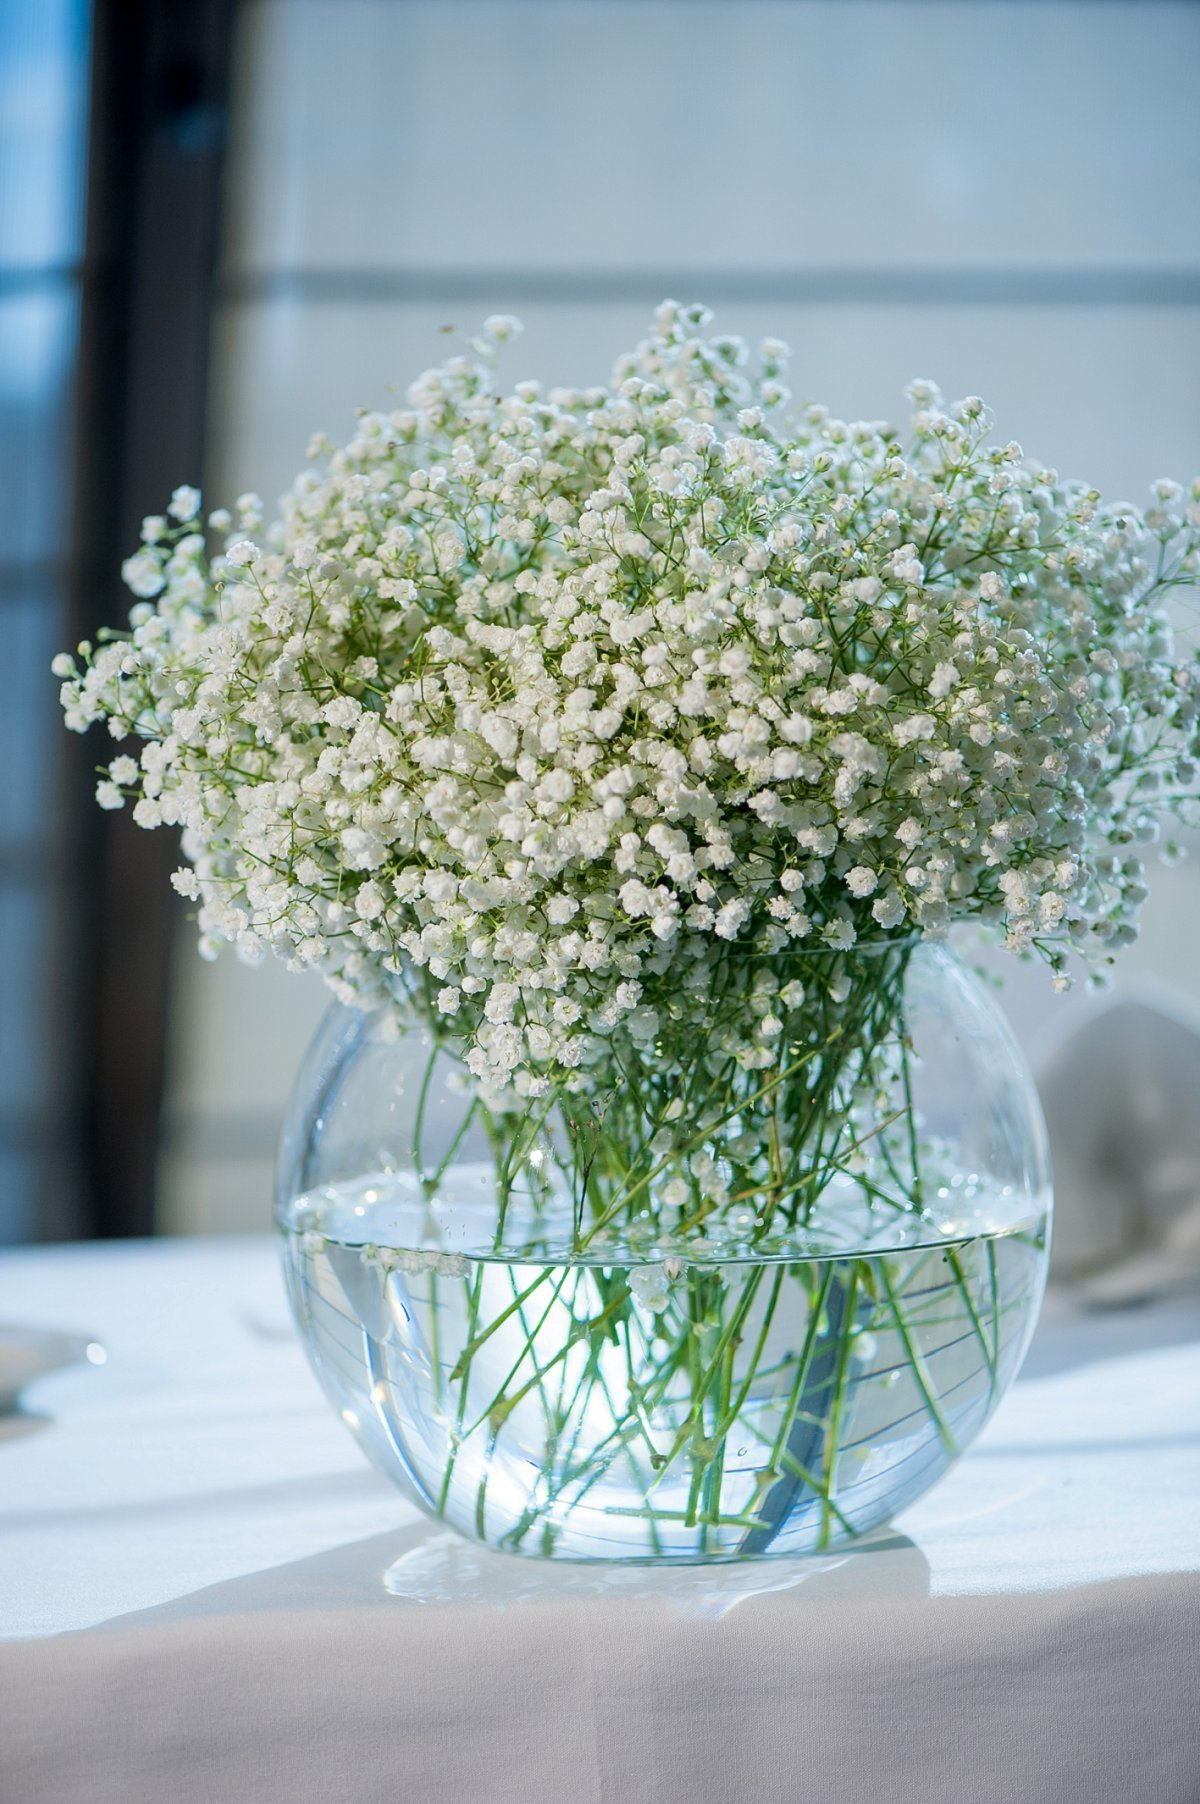 Simple beautiful baby's breath florals for weddings in Fargo Moorhead. Photos by Kriskandel.com